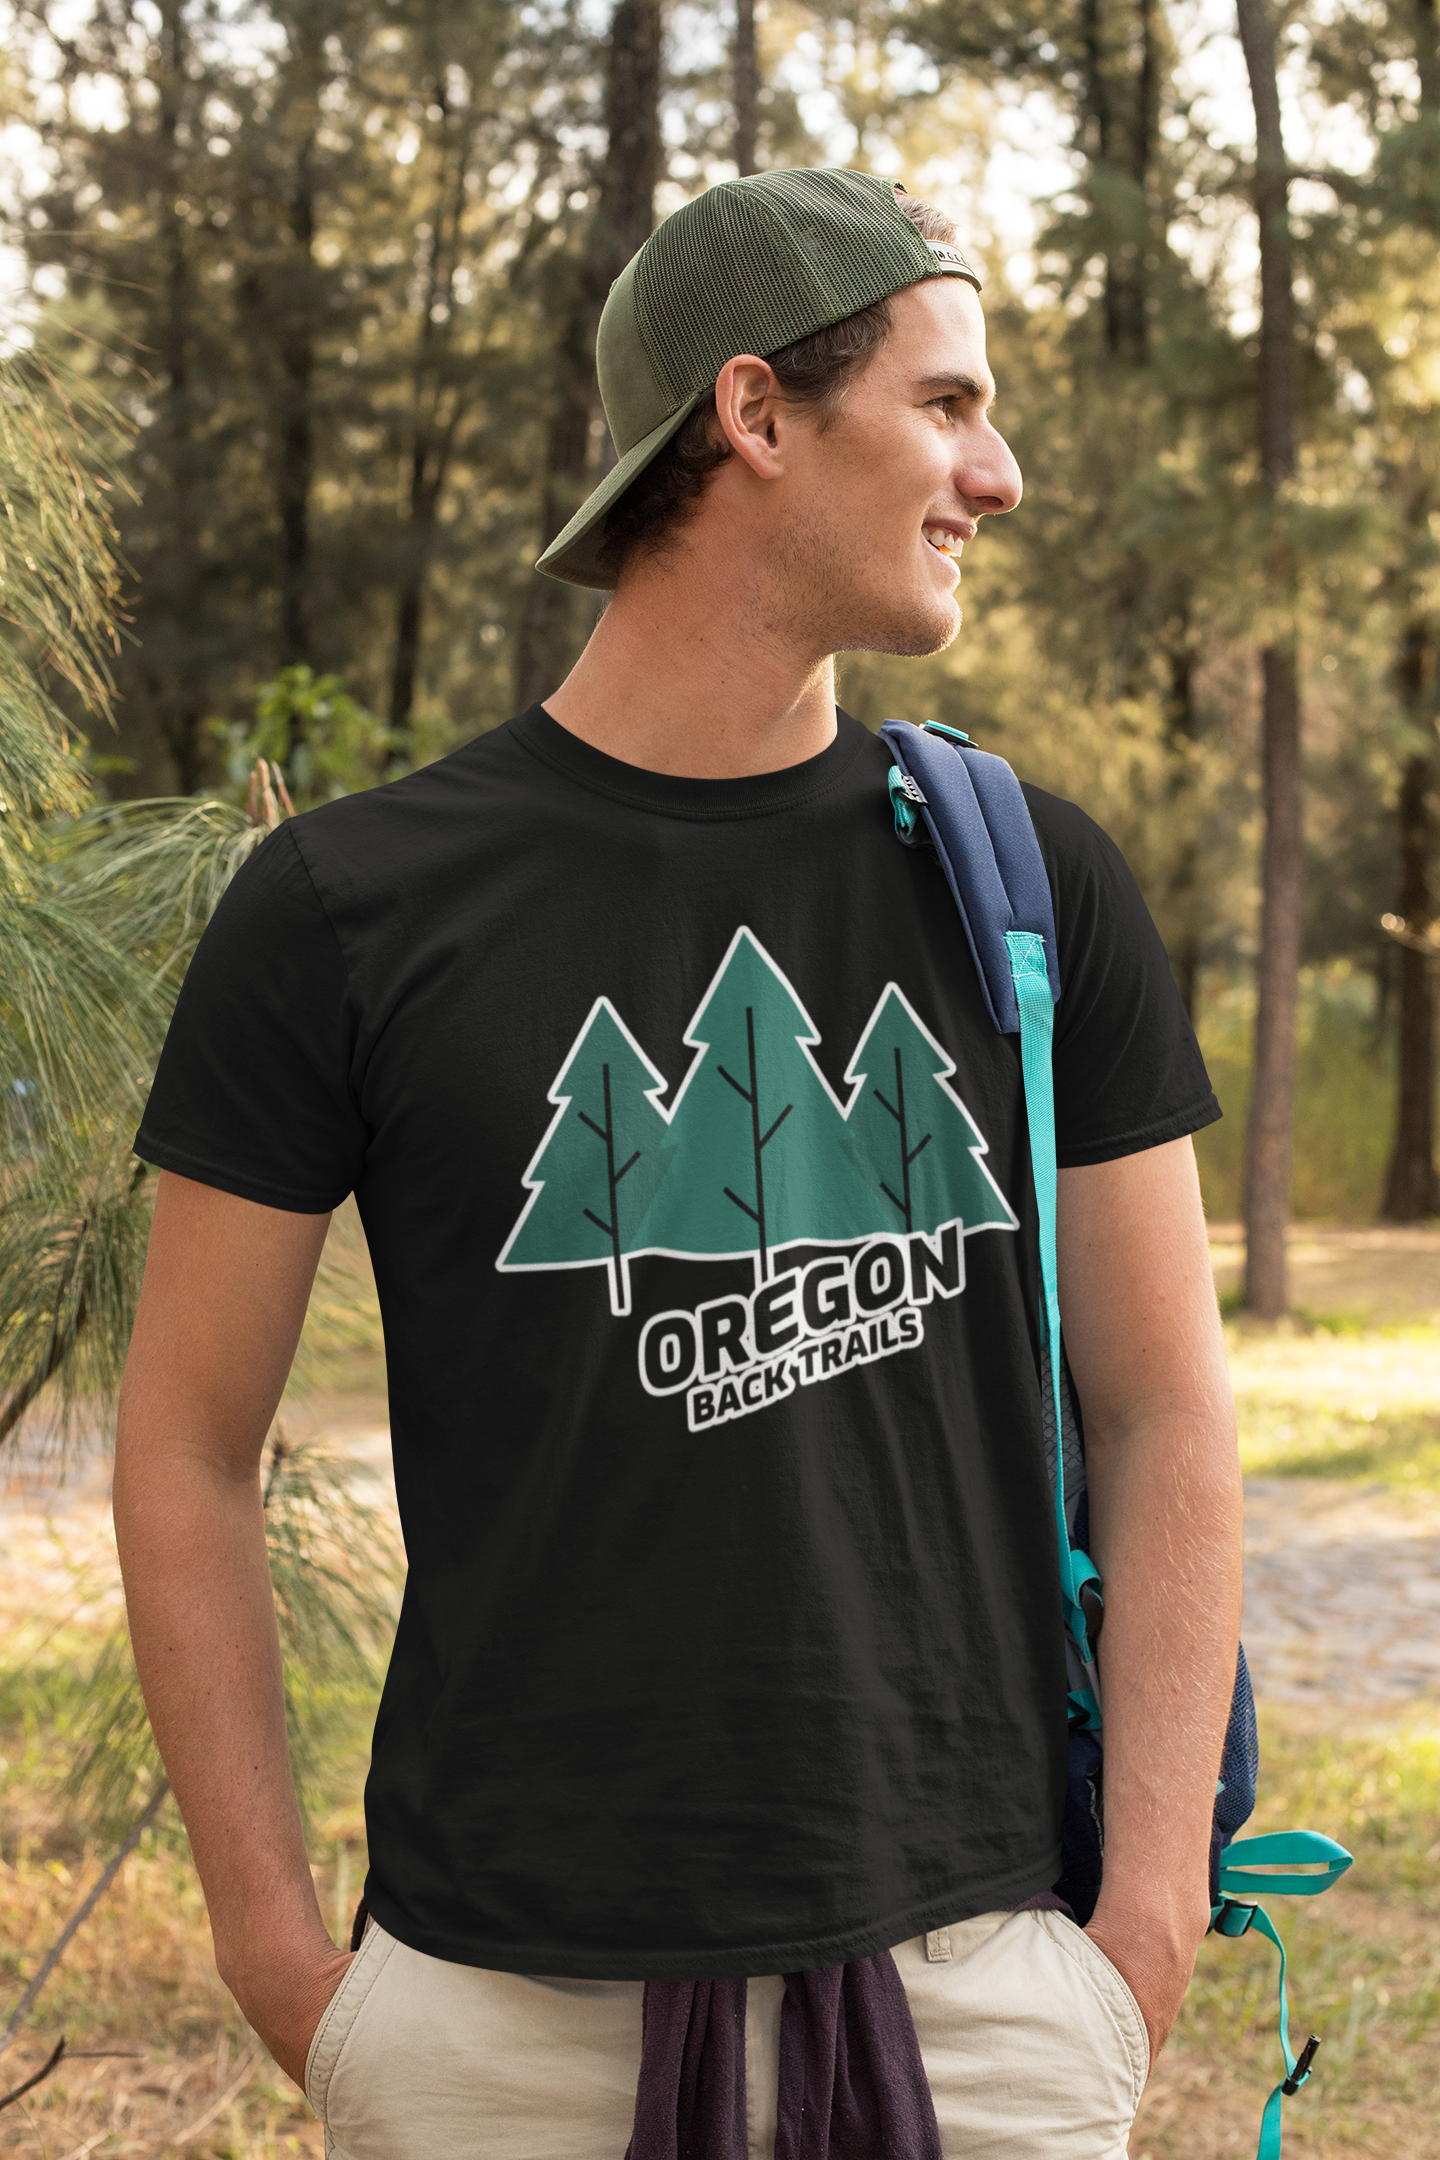 OREGON BACK TRAILS – ECO – T SHIRT